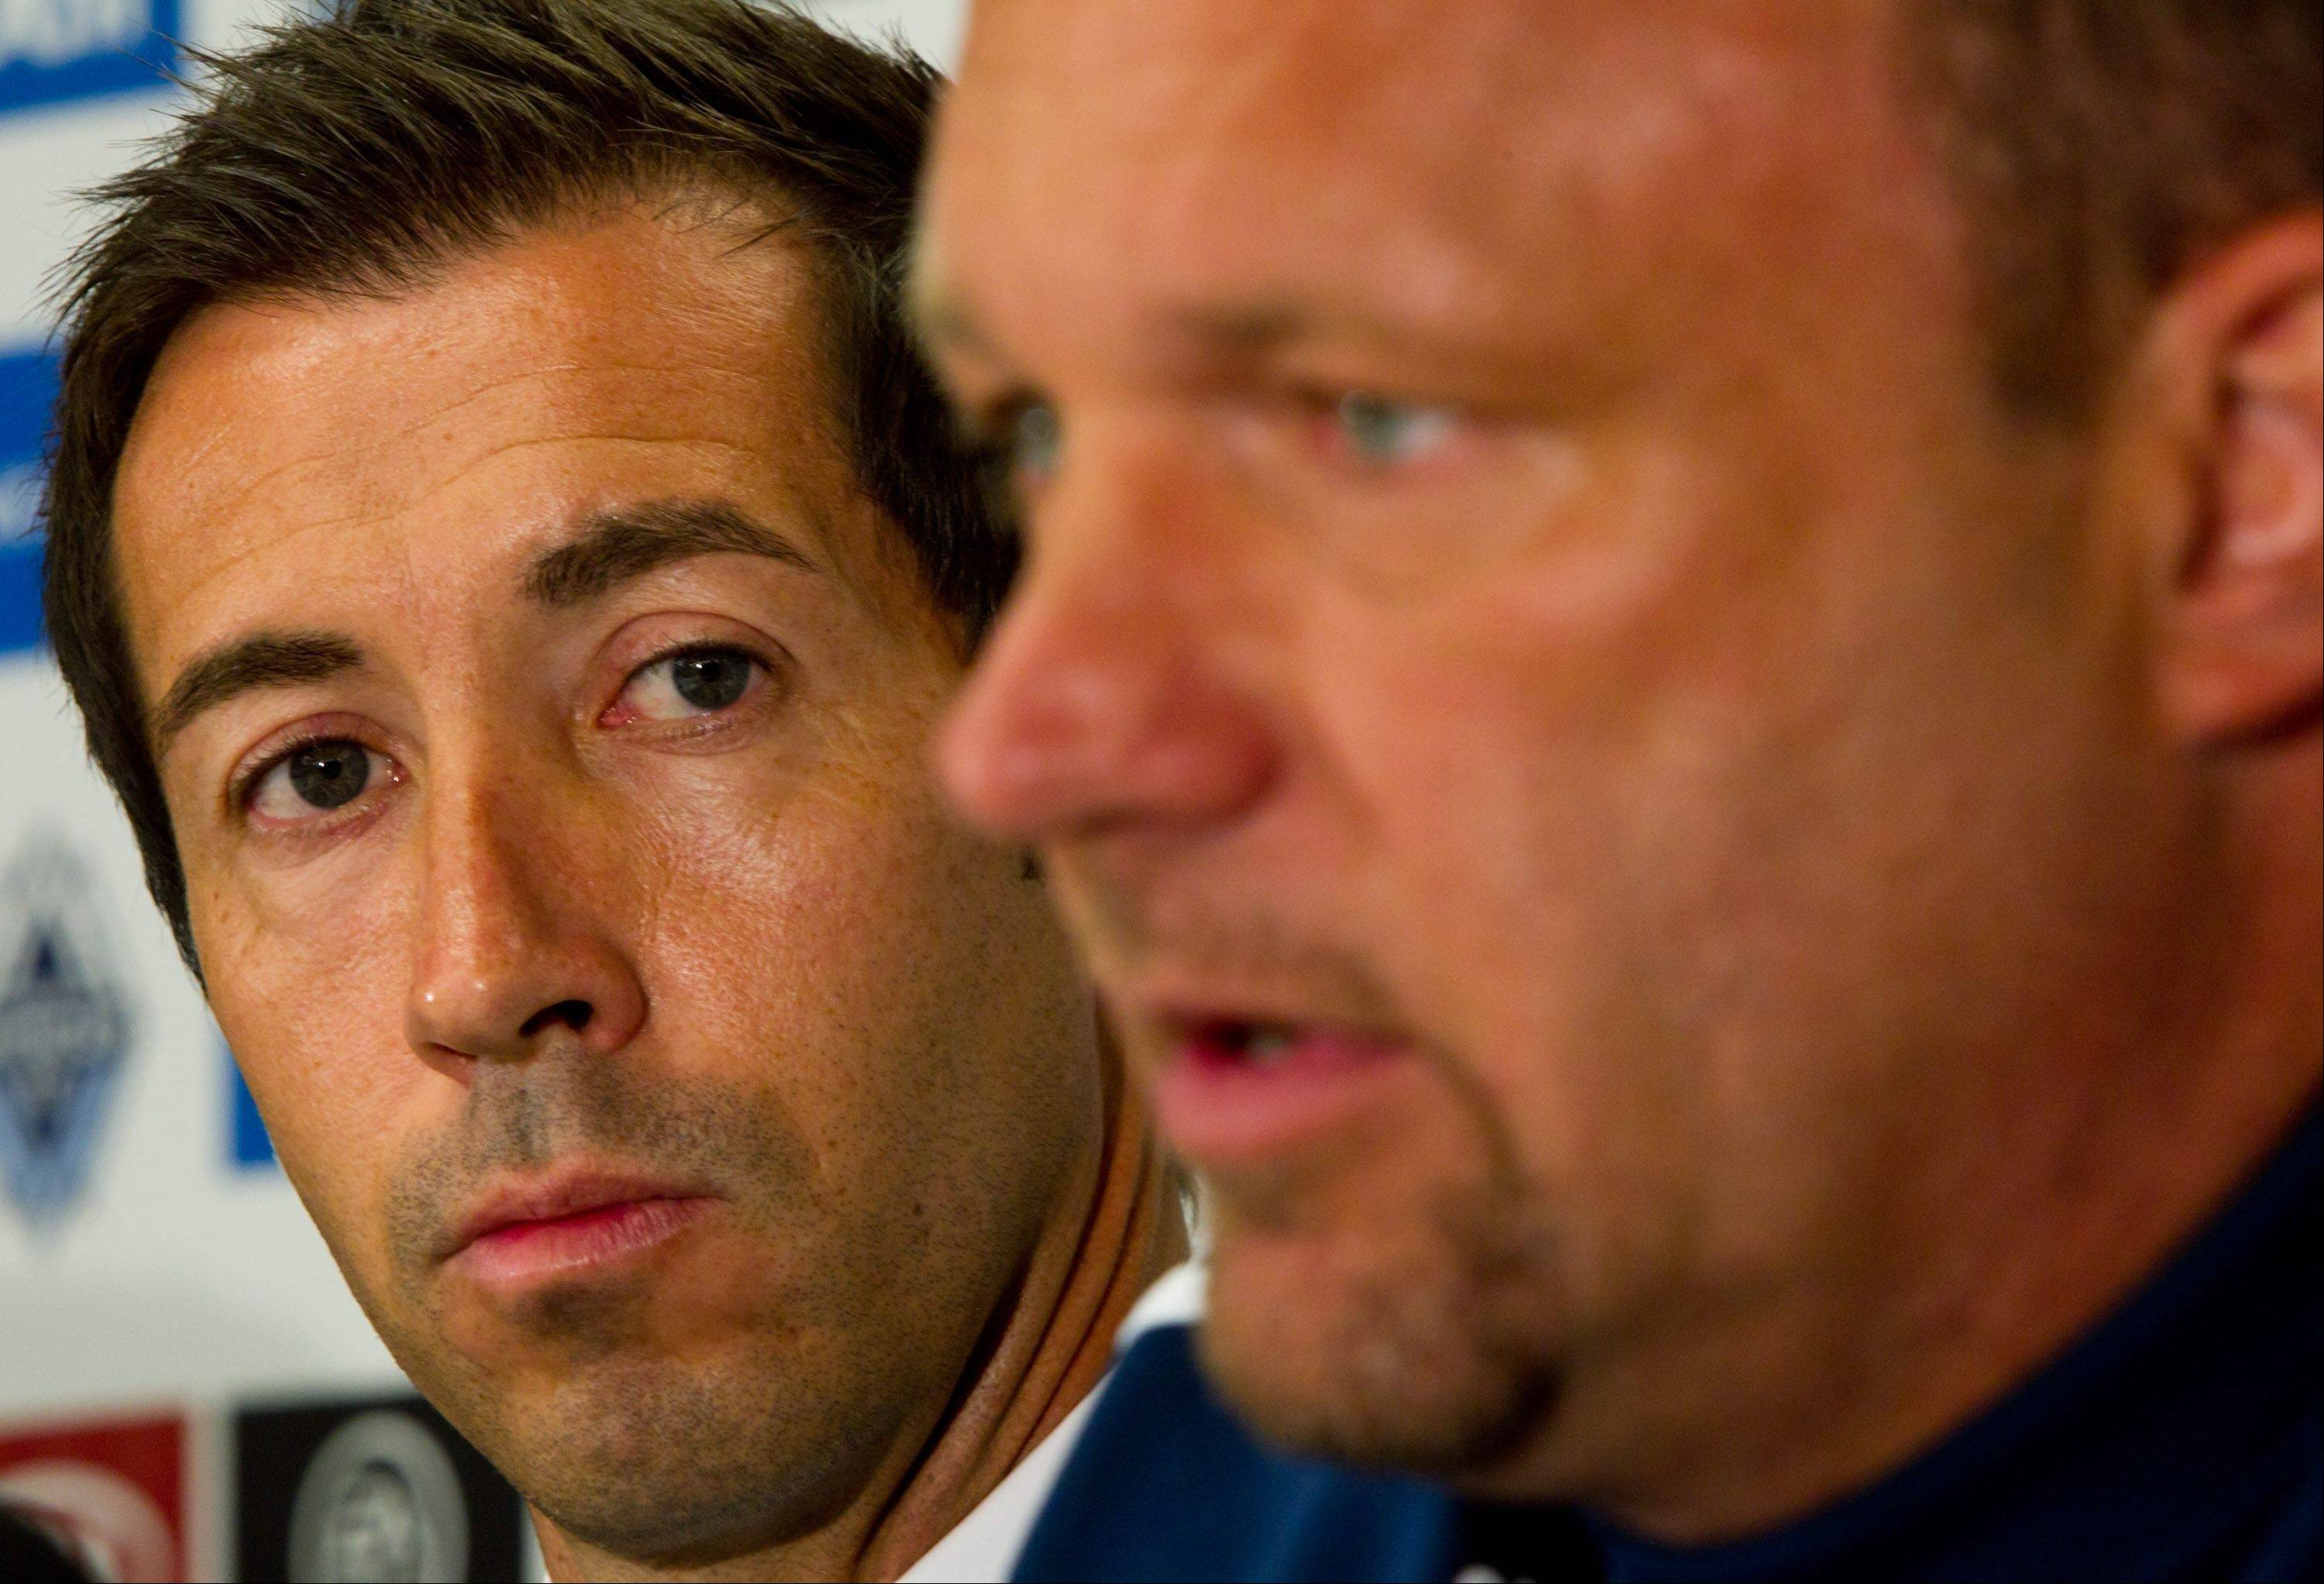 Martin Rennie, left, of Scotland, listens as Vancouver Whitecaps' acting head coach Tom Soehn speaks during a news conference in which Rennie was introduced as the new coach of the soccer team in Vancouver, British Columbia, on Tuesday. Soehn, the club's director of hockey operations, will hand over the coaching duties to Rennie at the end of the season. Soehn, a graduate of Forest View High School in Arlington Heights, once played for the Chicago Fire.